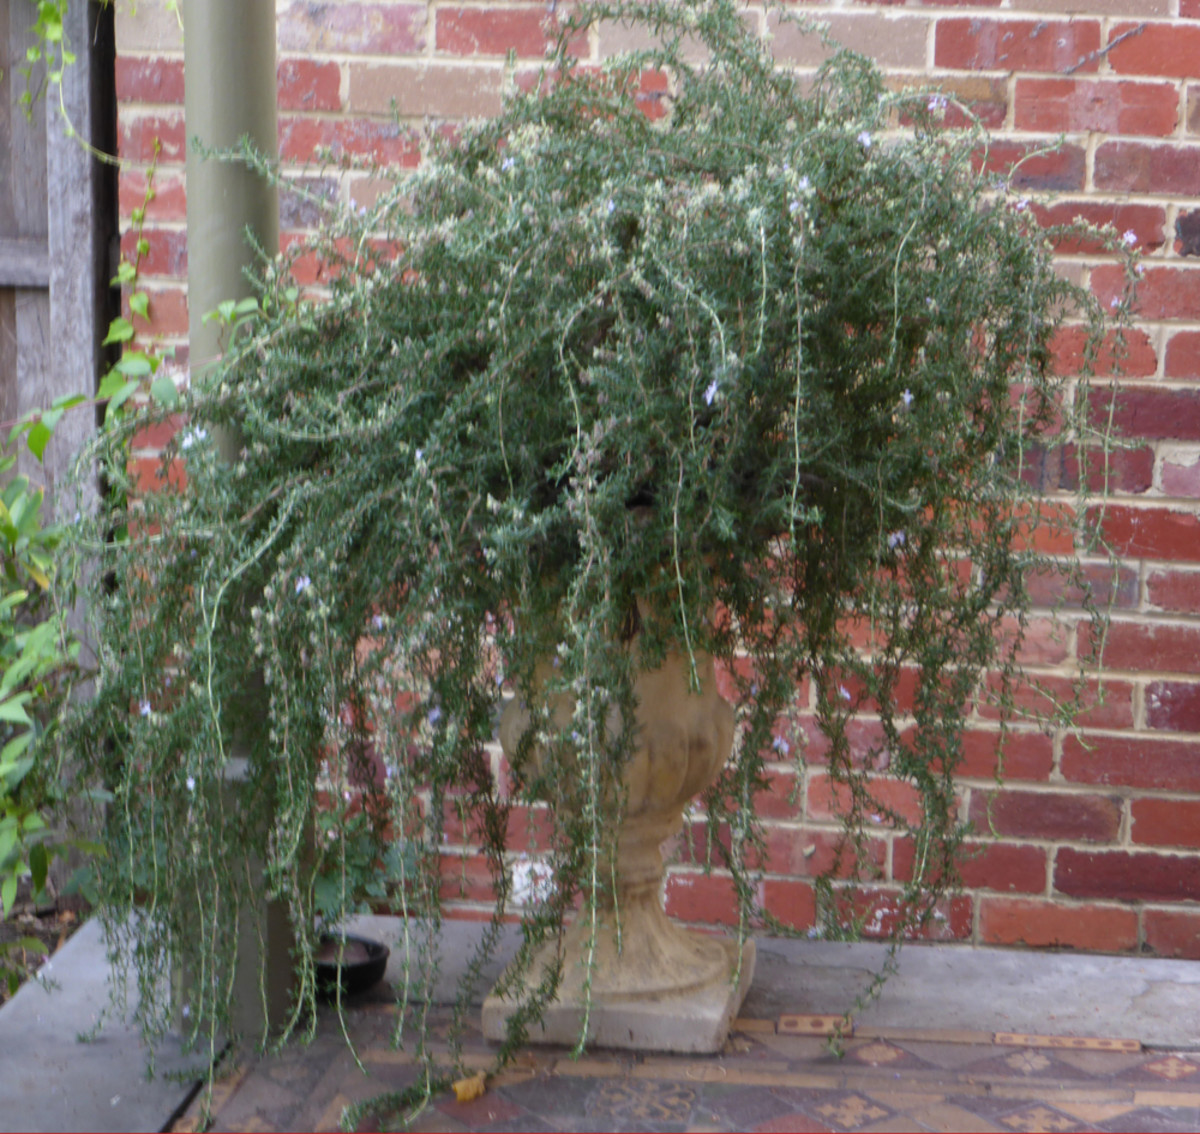 I used about an eighth of this bush for around 2kg of apples for my rosemary jelly. Image: © Siu Ling Hui